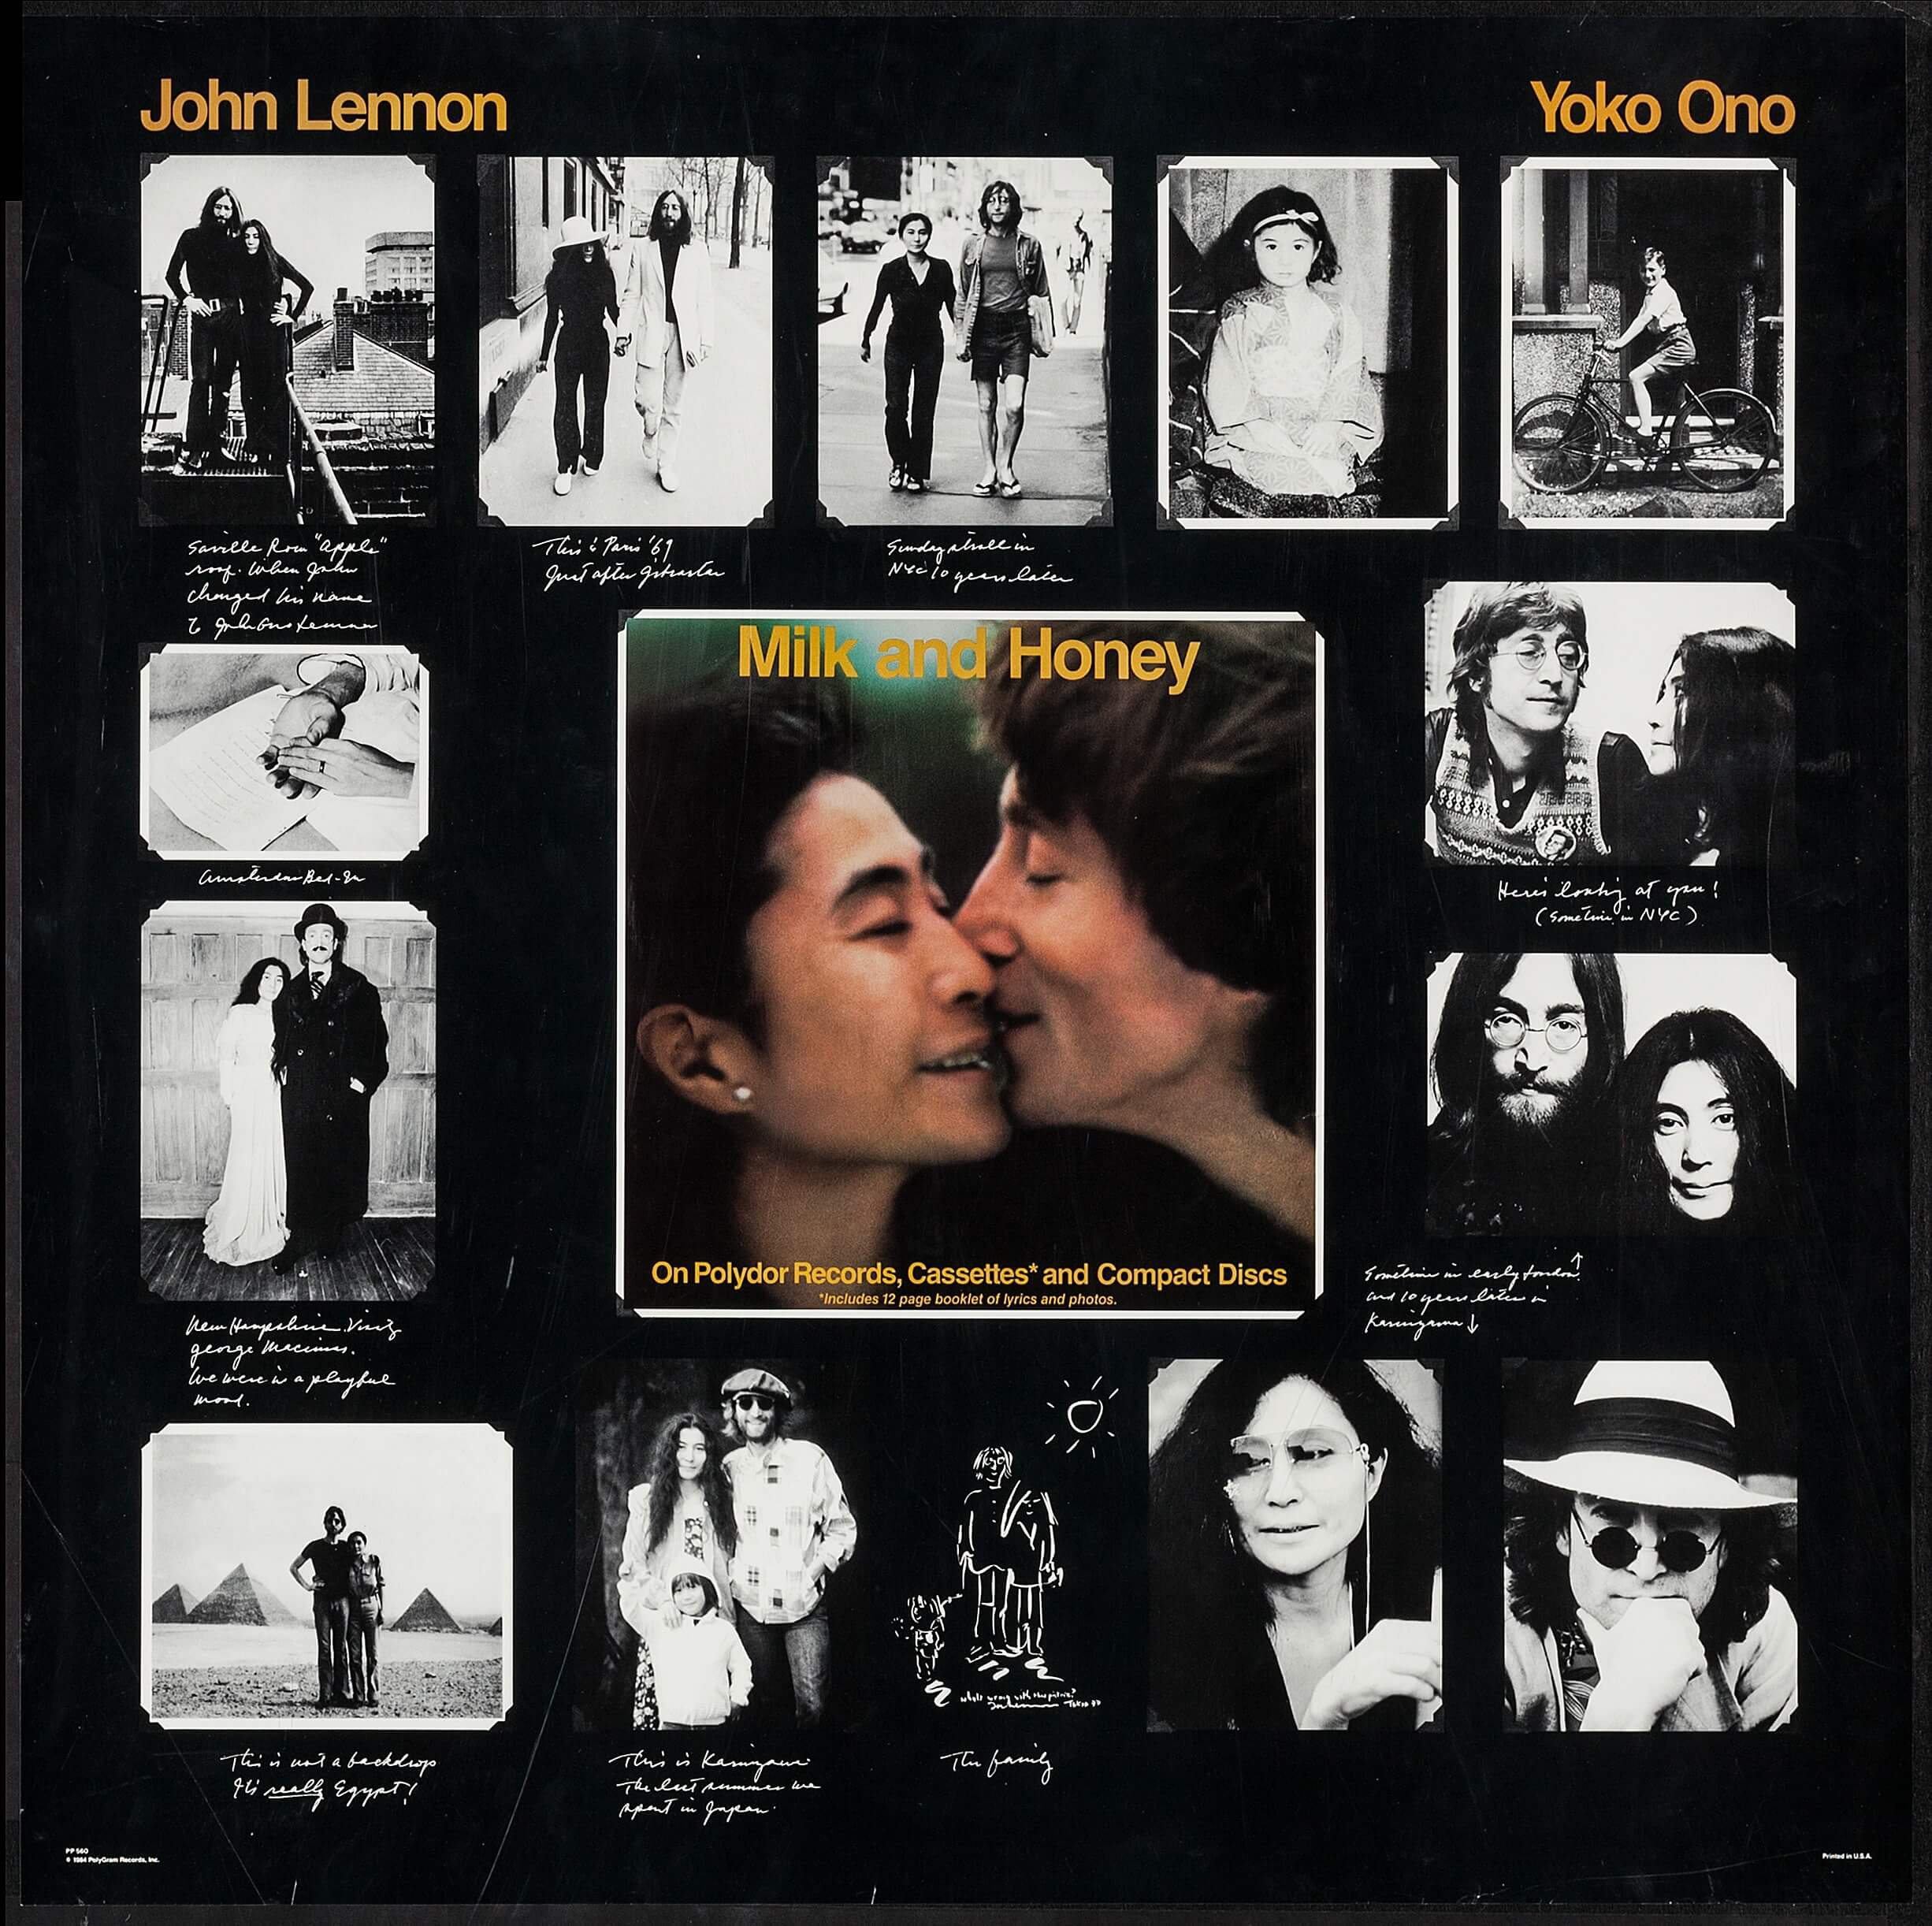 Milk And Honey By John Lennon And Yoko Ono Polygram 1984 Album Lot 52239 Heritage Auctions